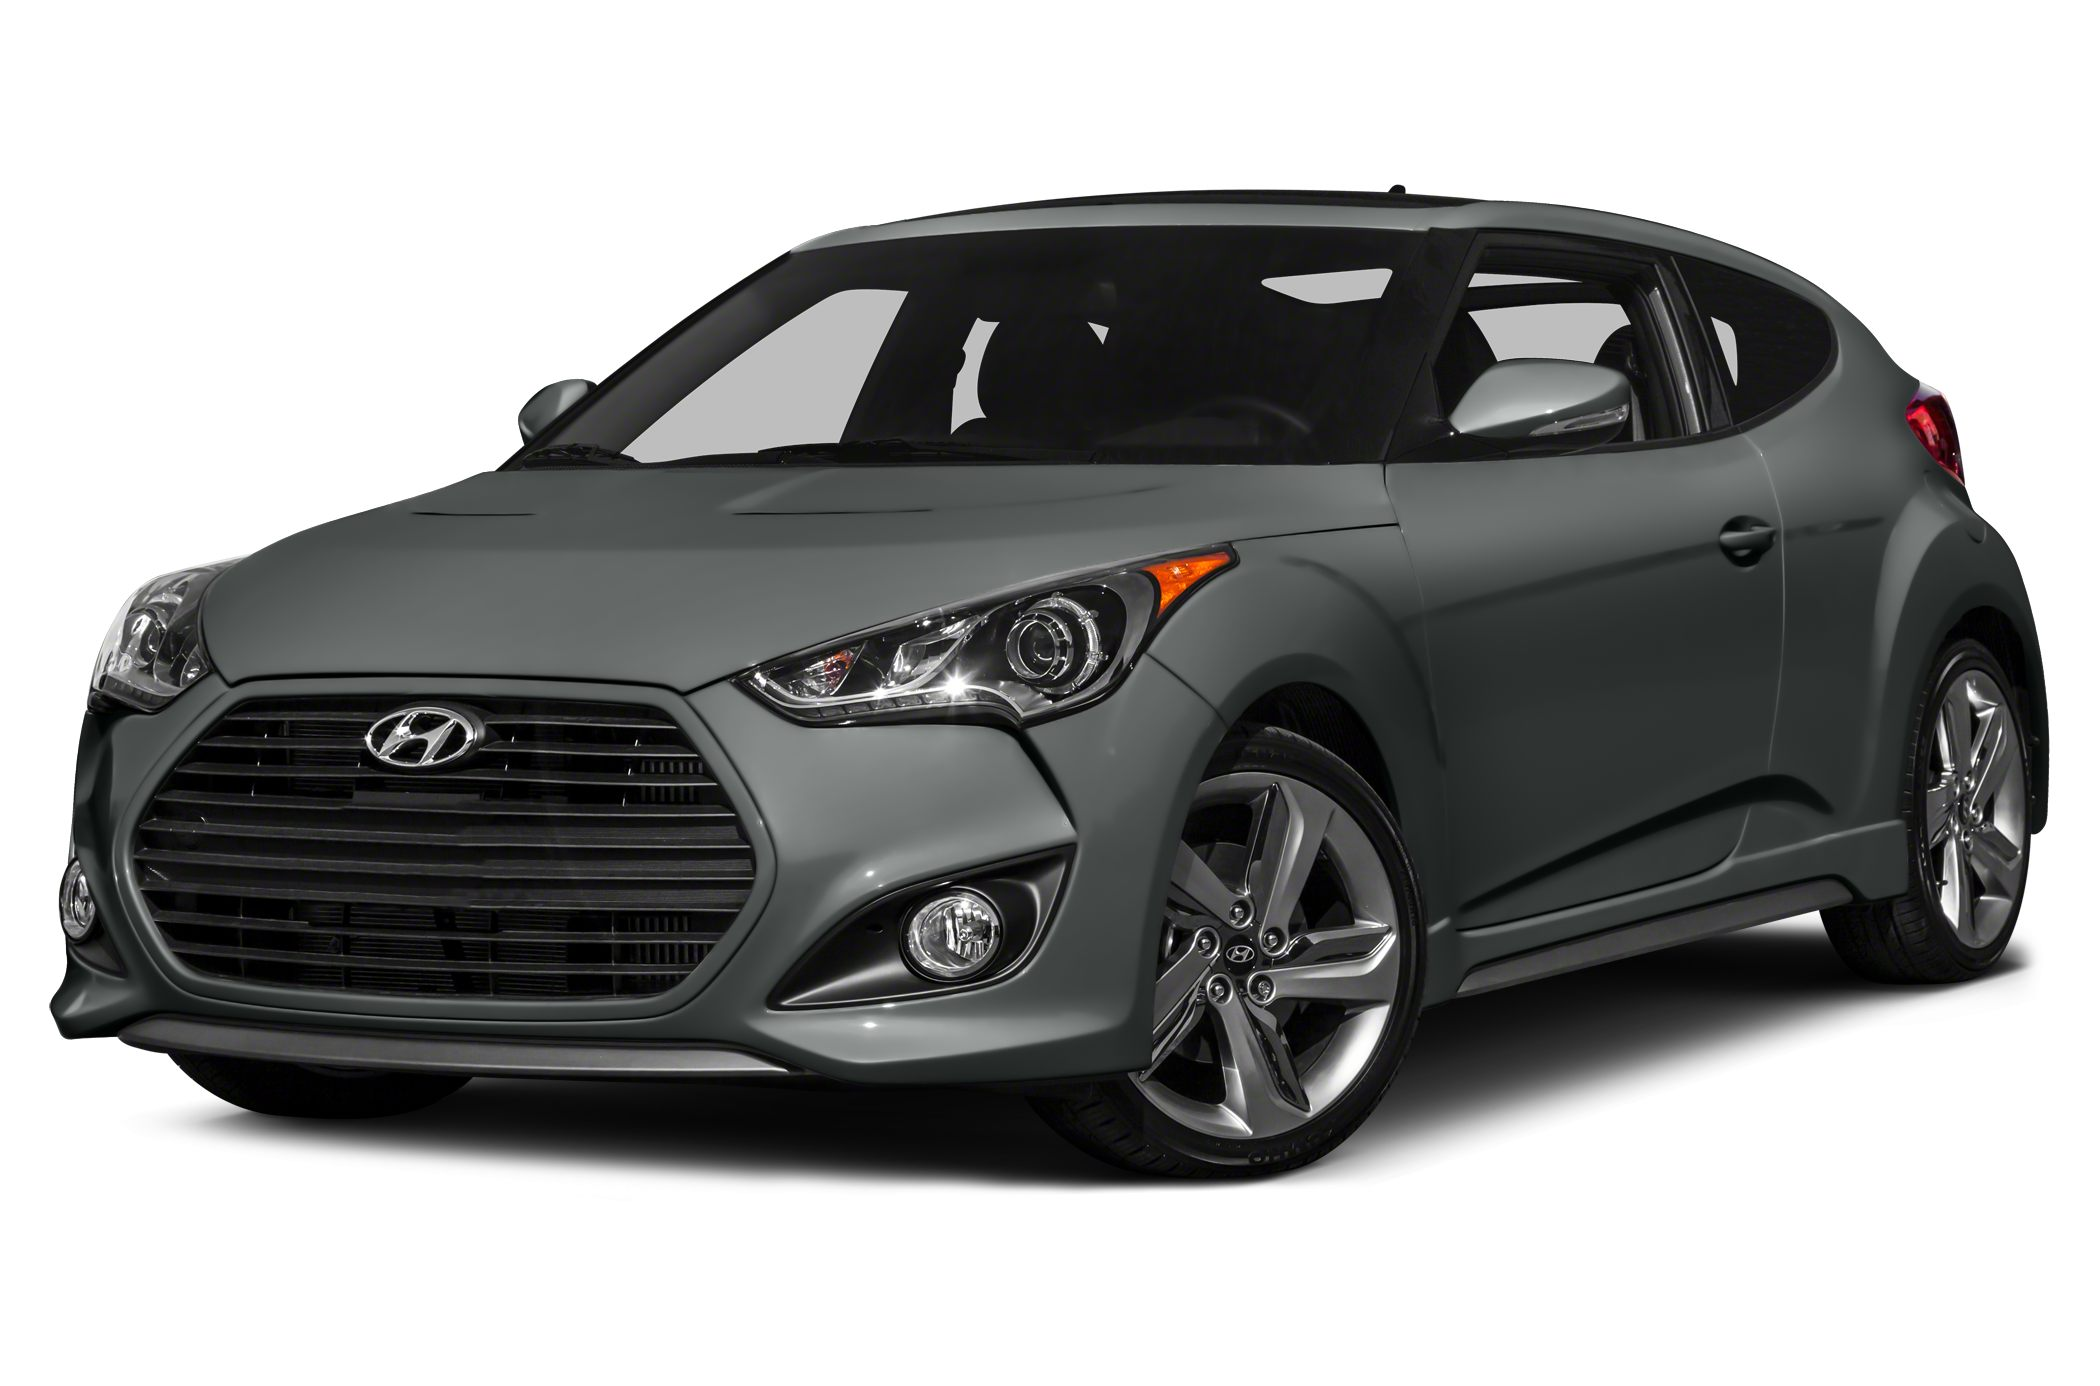 2015 Hyundai Veloster Turbo Hatchback for sale in Rochester for $21,446 with 4 miles.